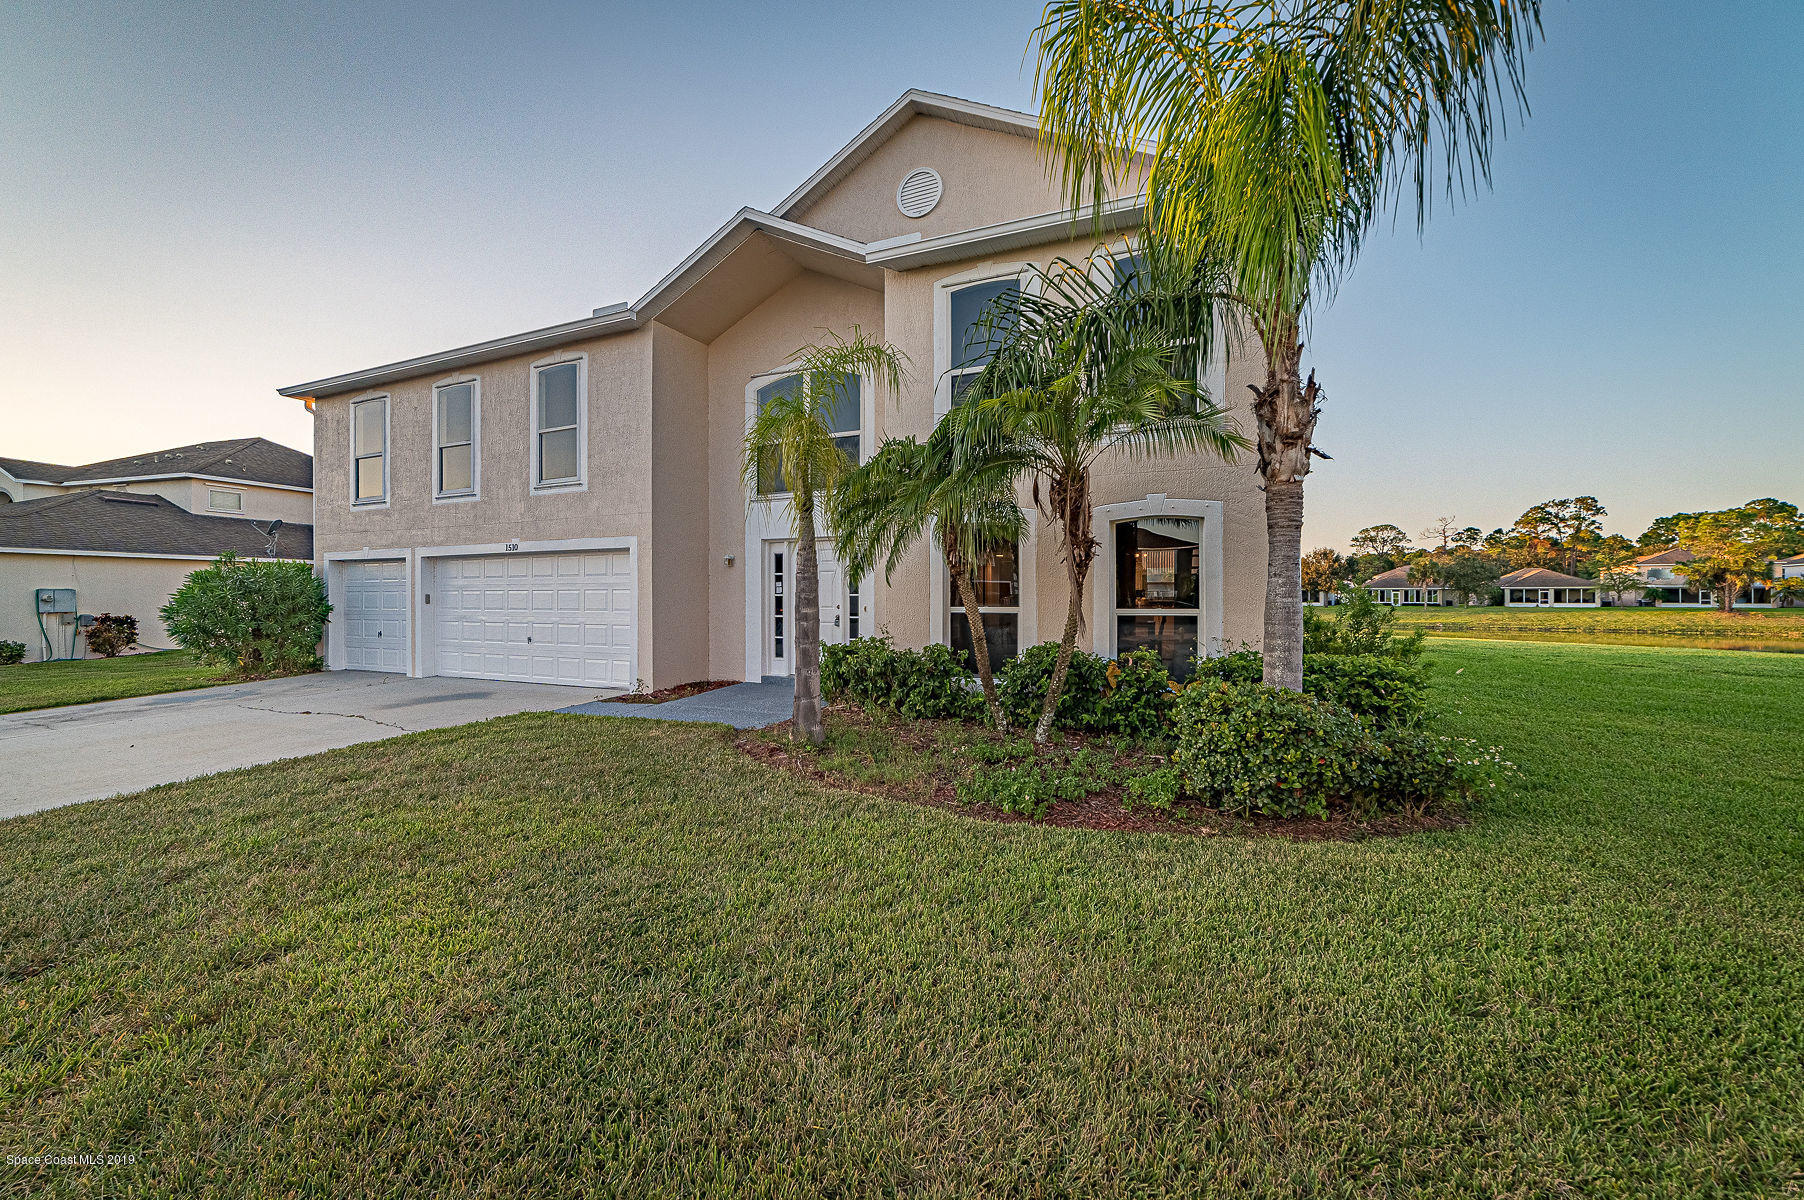 Single Family Homes for Sale at 1510 Las Palmos Palm Bay, Florida 32908 United States